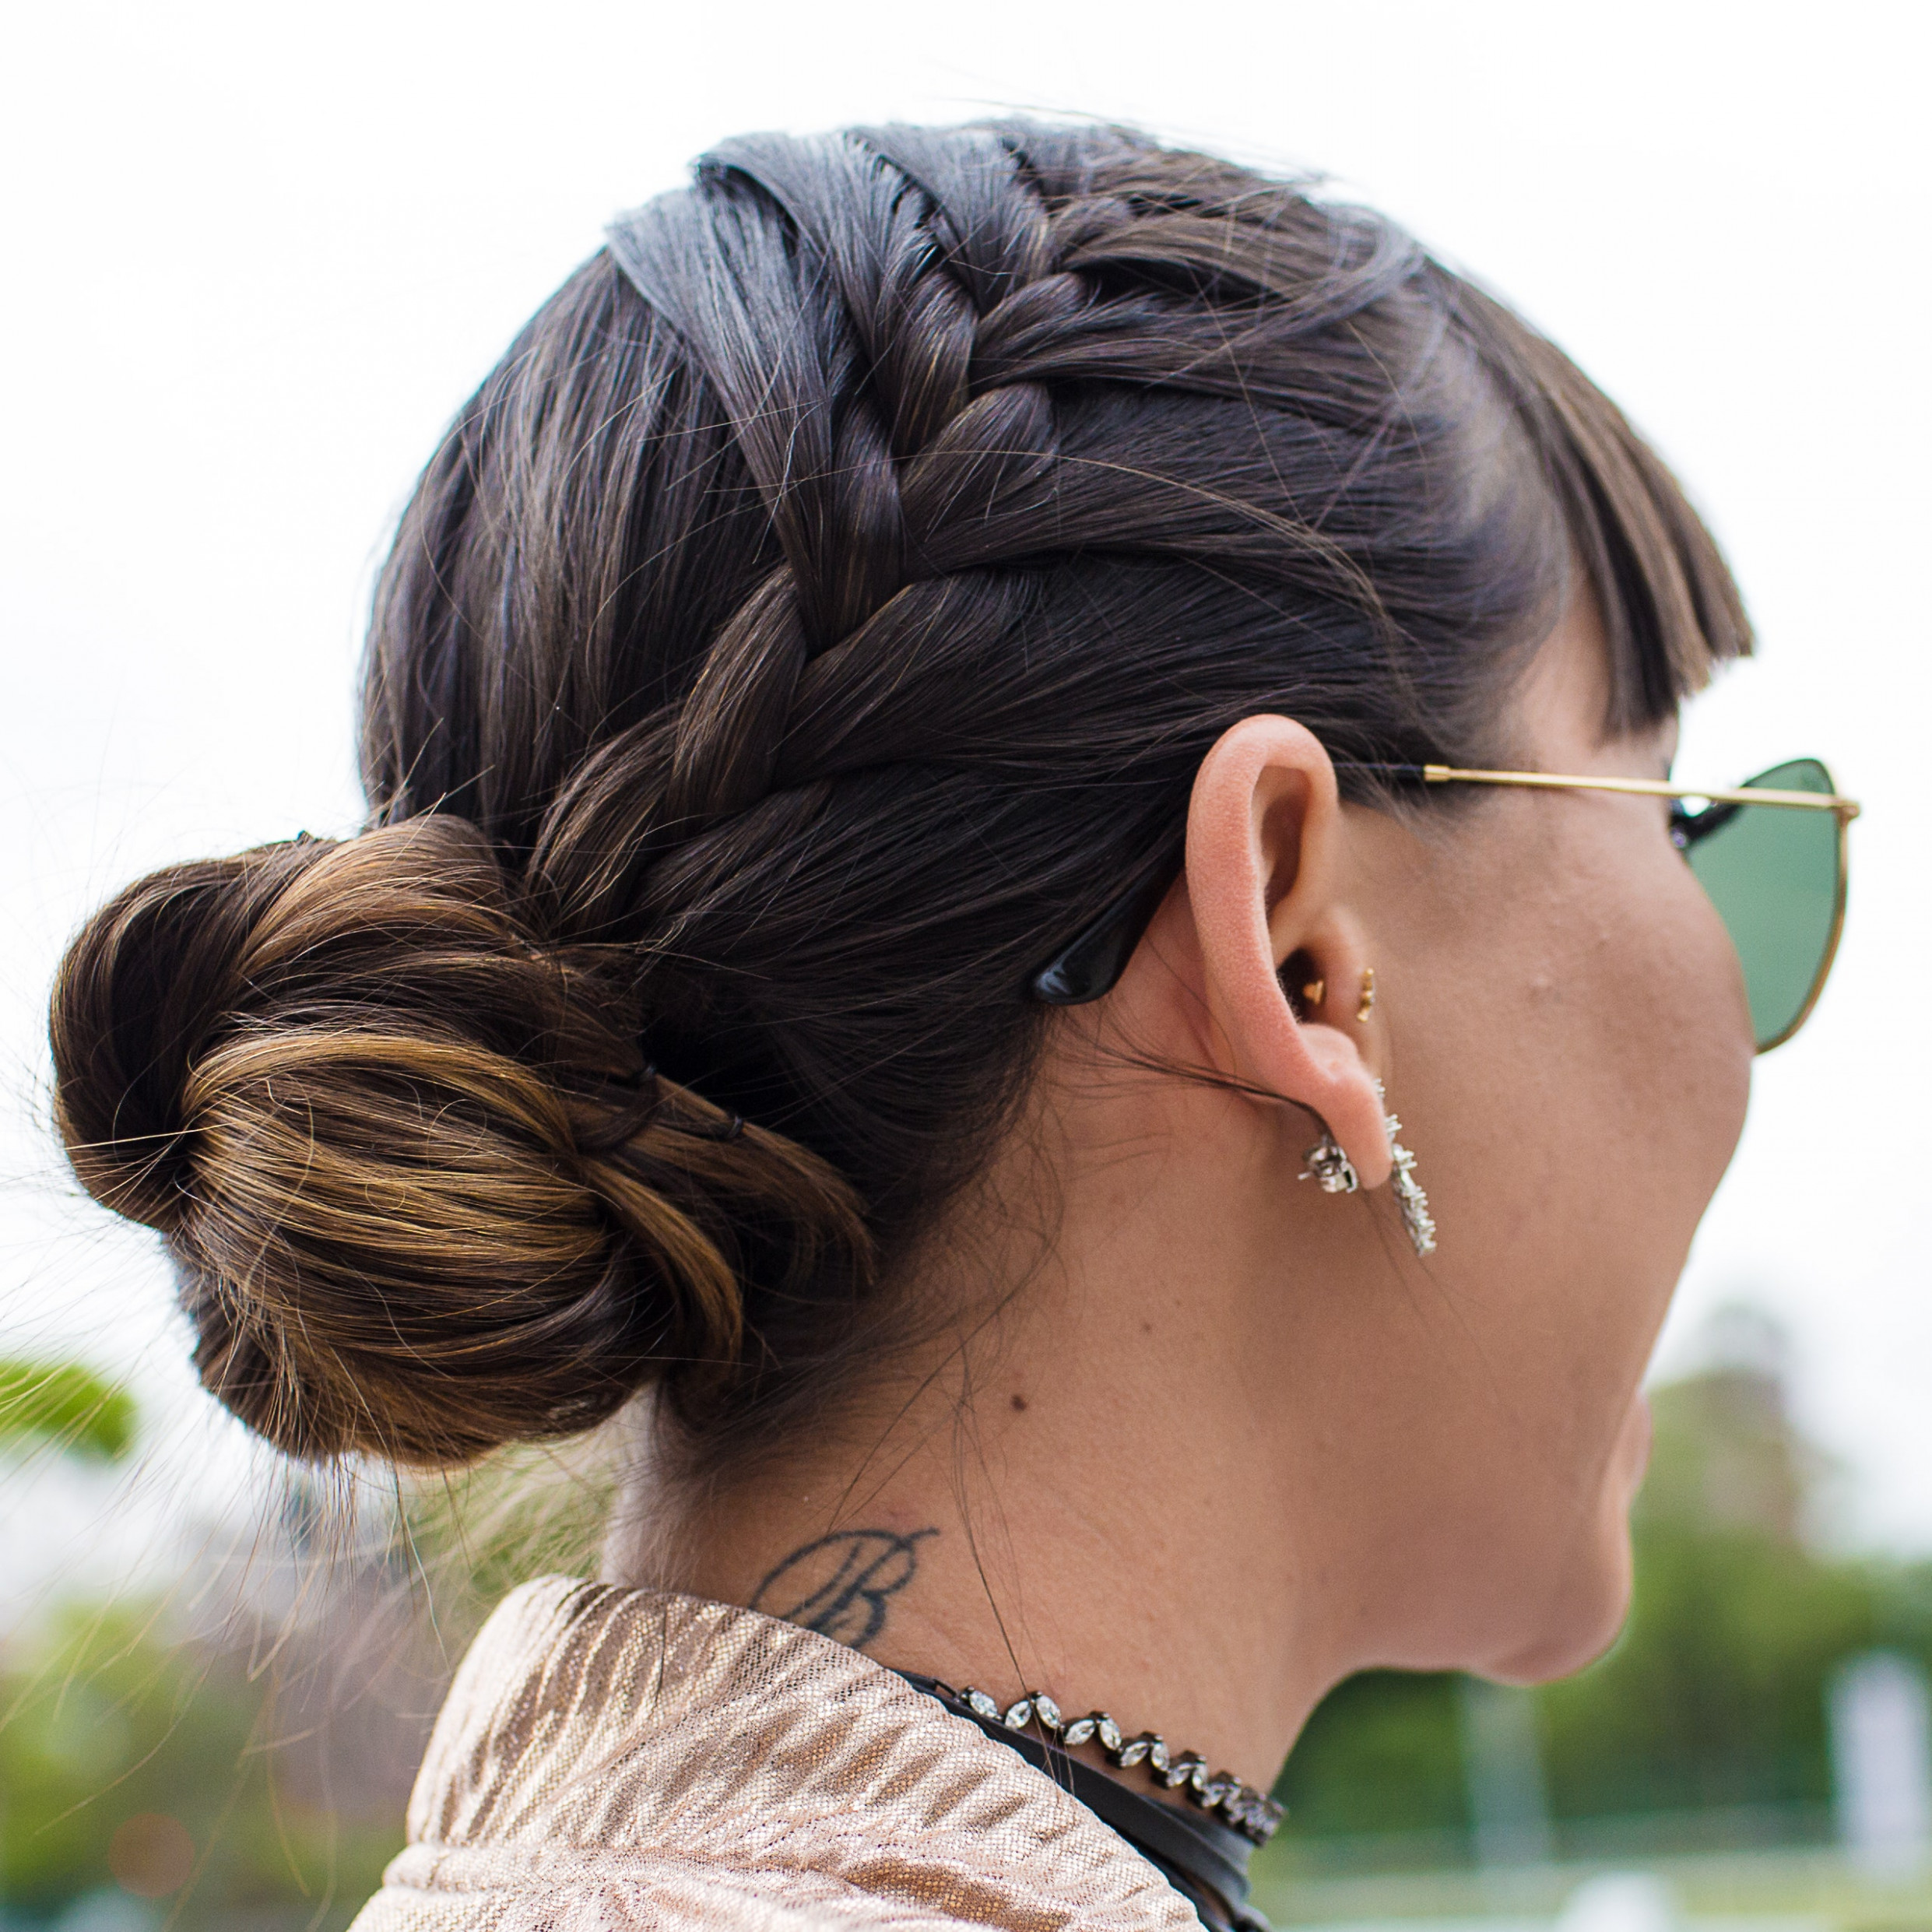 How to braid hair: 12 tutorials you can do yourself | glamour cool braids for long hair